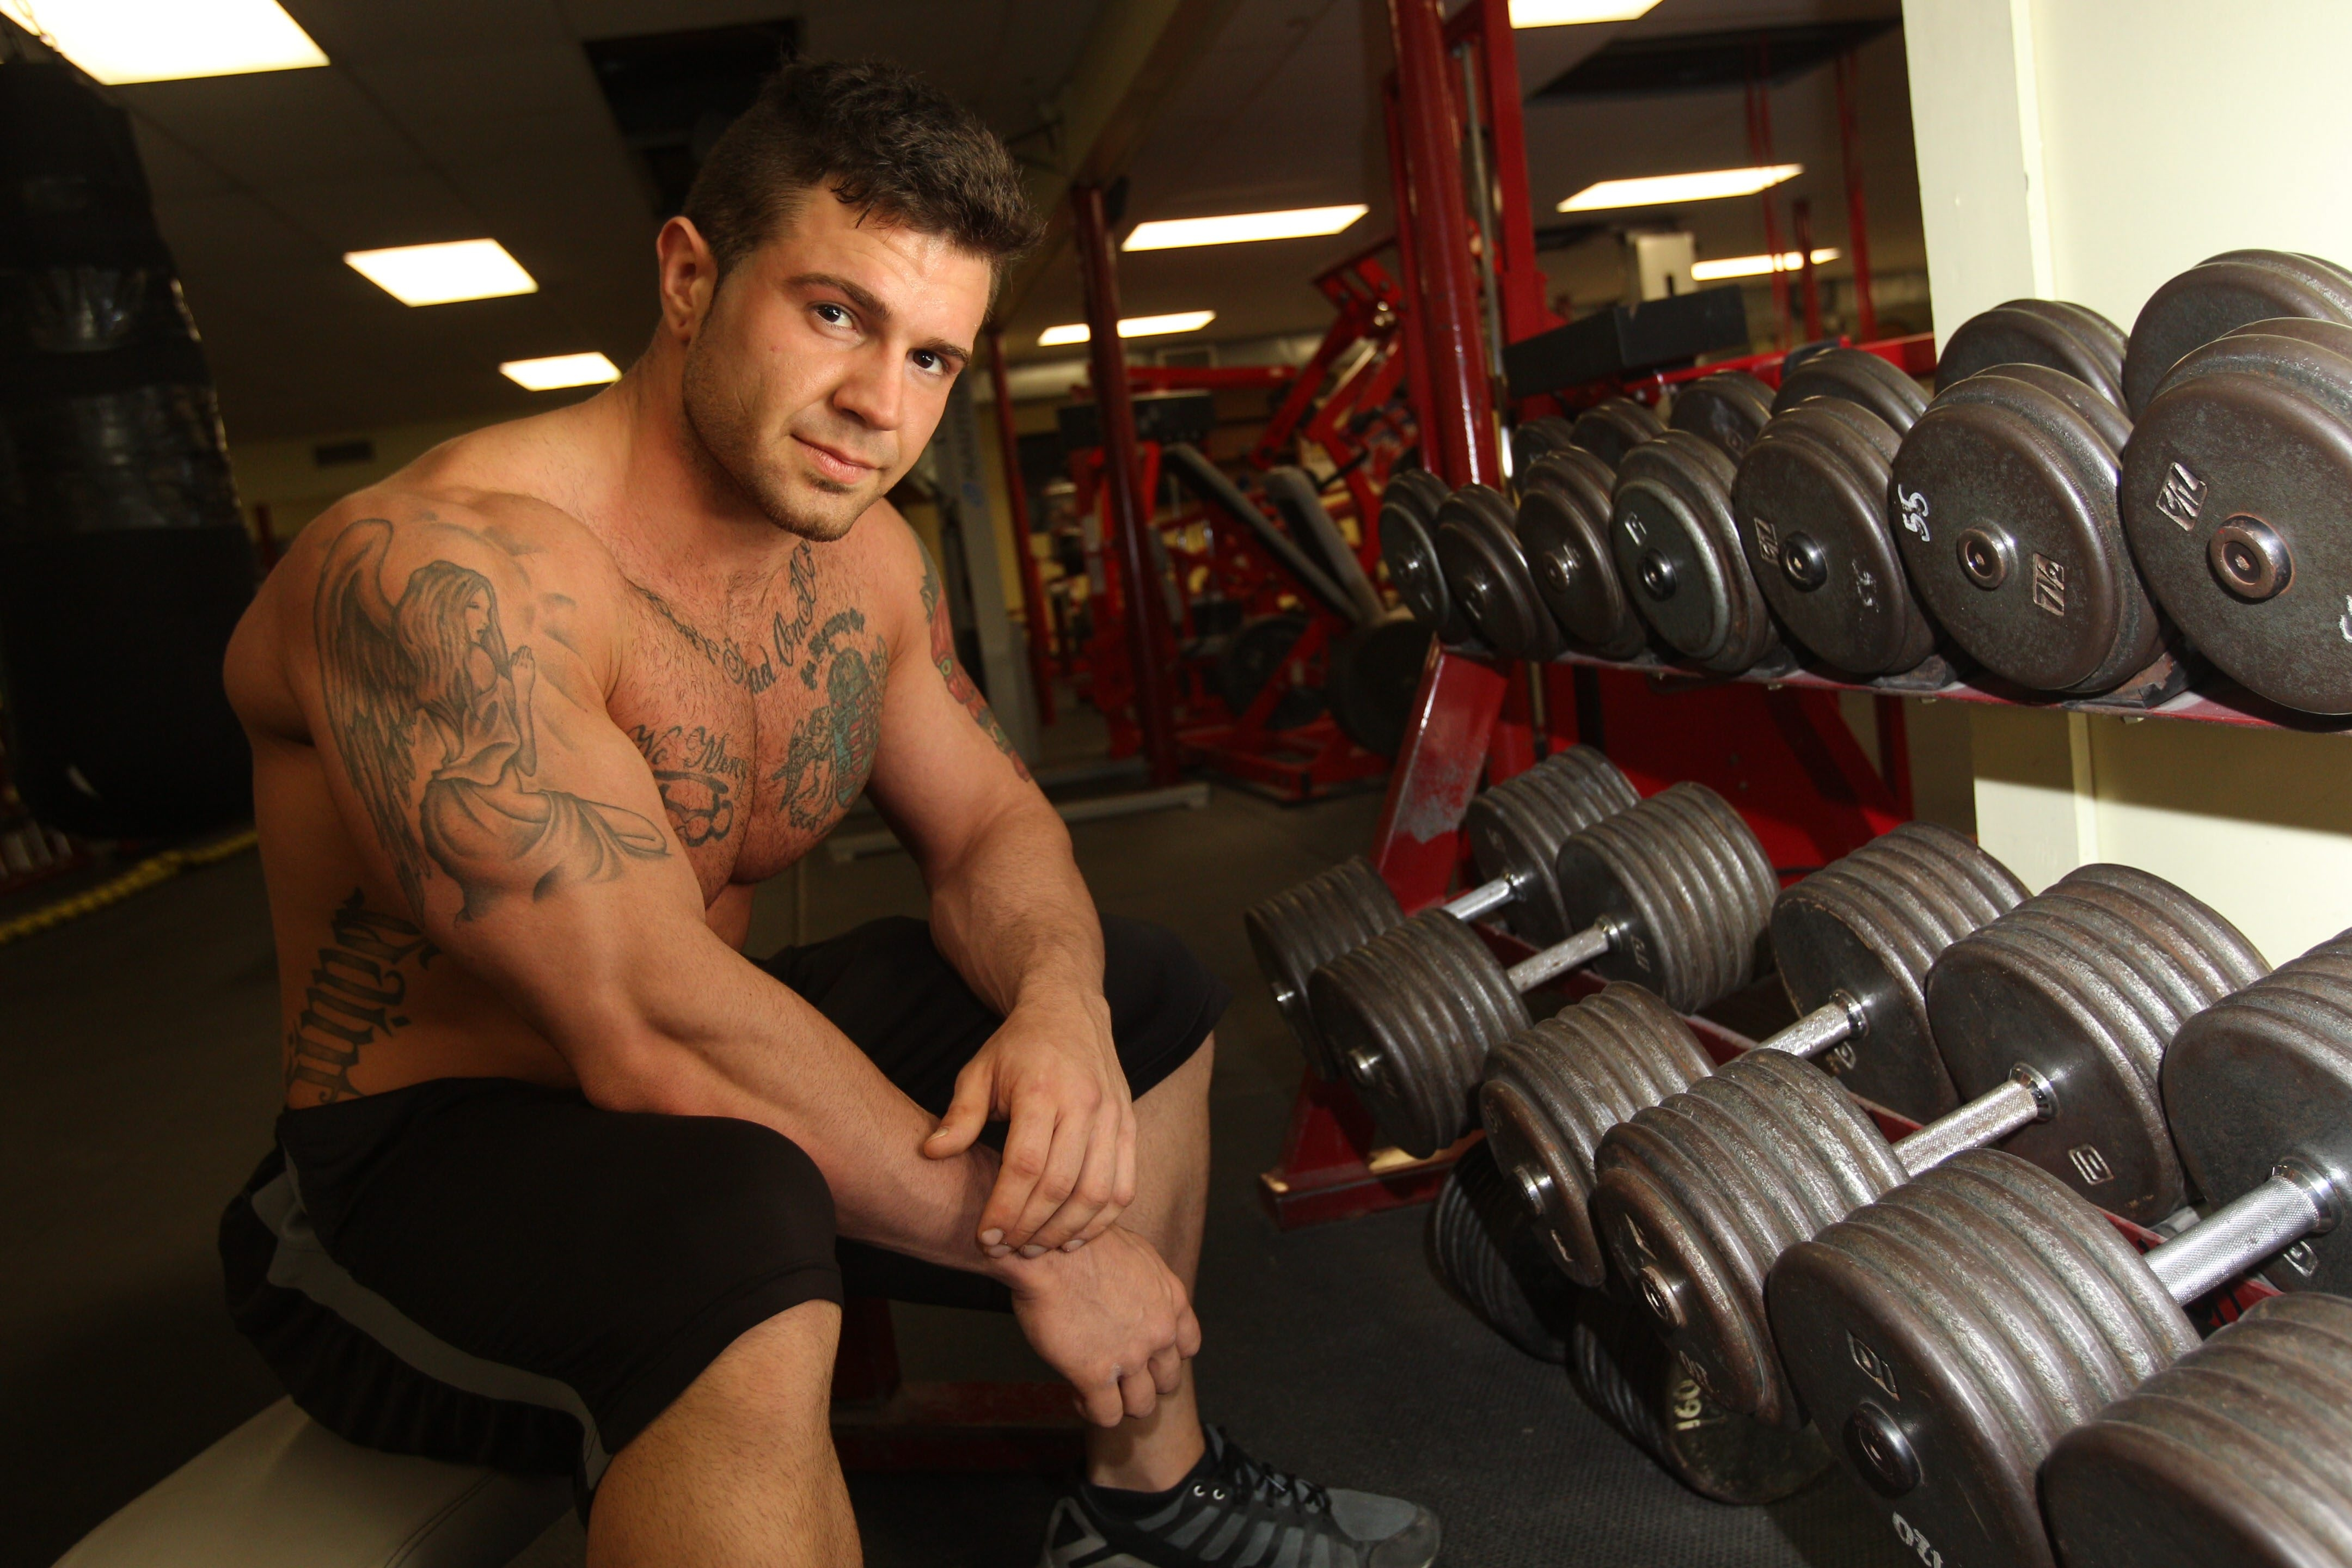 Scott Quinn, 23, of South Buffalo, is a bodybuilder who is training for the Mr. Buffalo competition, which takes place today.